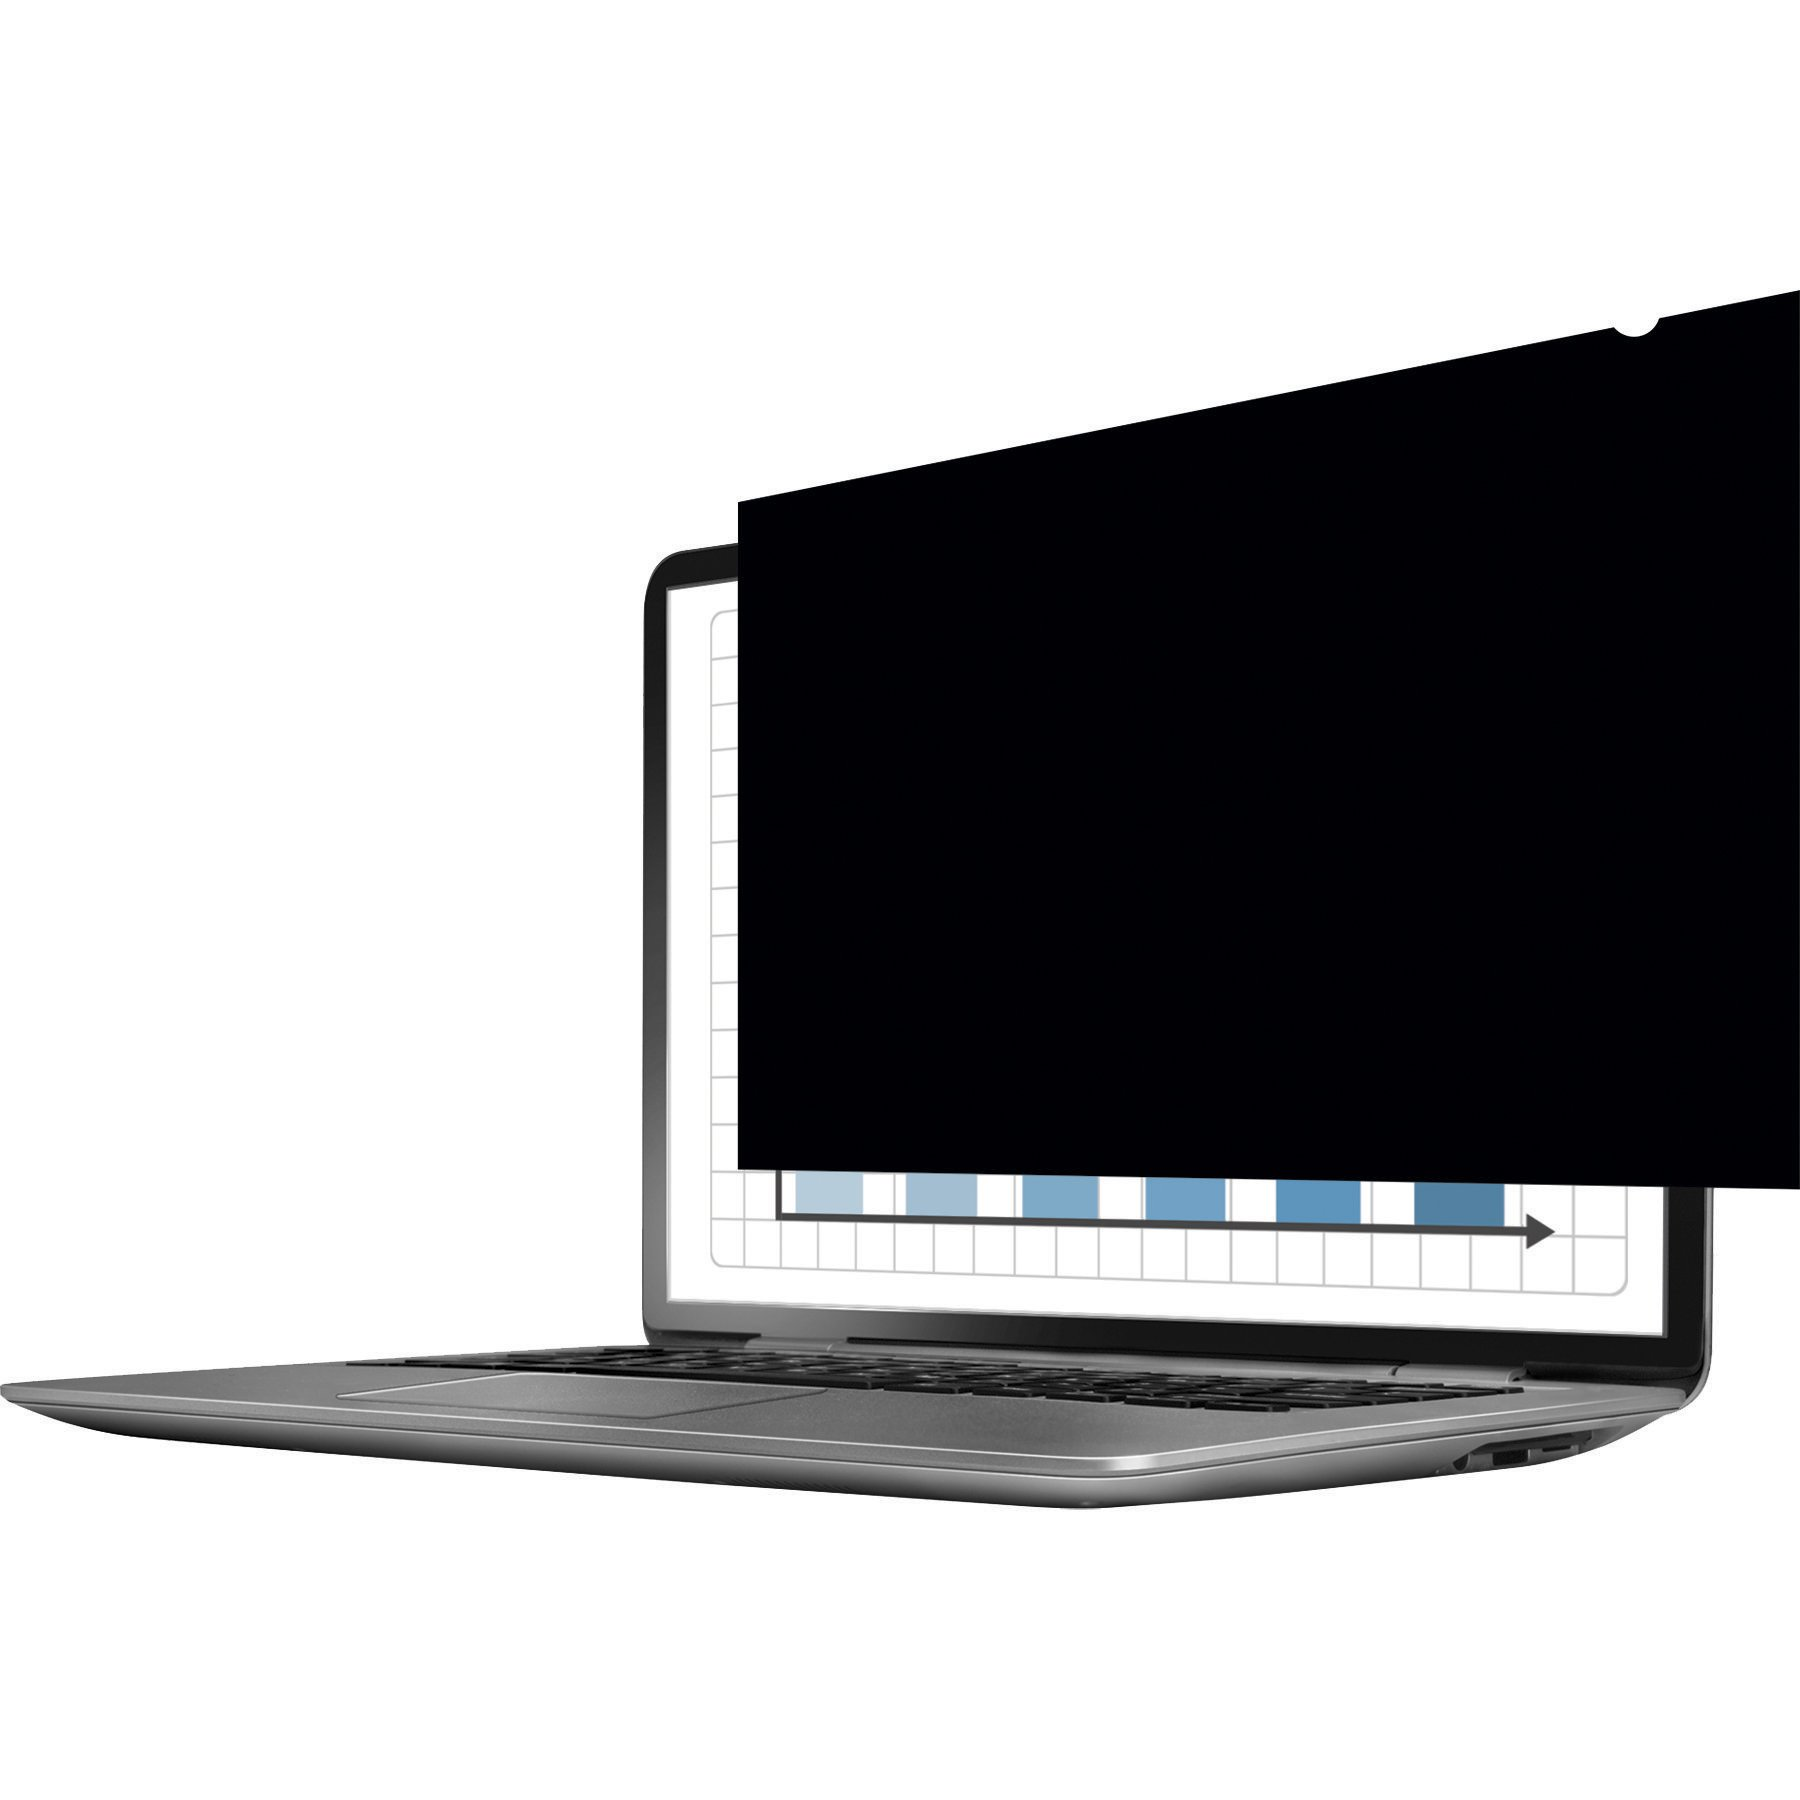 Fellowes PrivaScreen Privacy Filter for 19.0 Inch Monitors 5:4 (4800501) by Fellowes